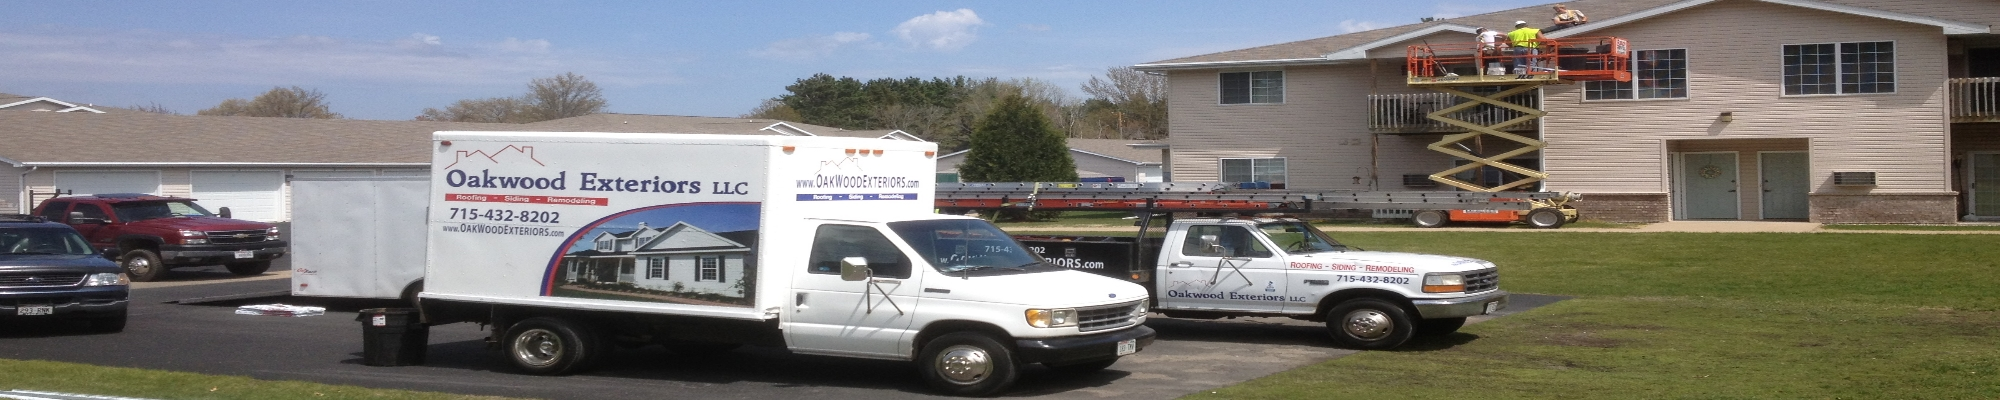 Commercial Roofing Appleton Roofing Contractors